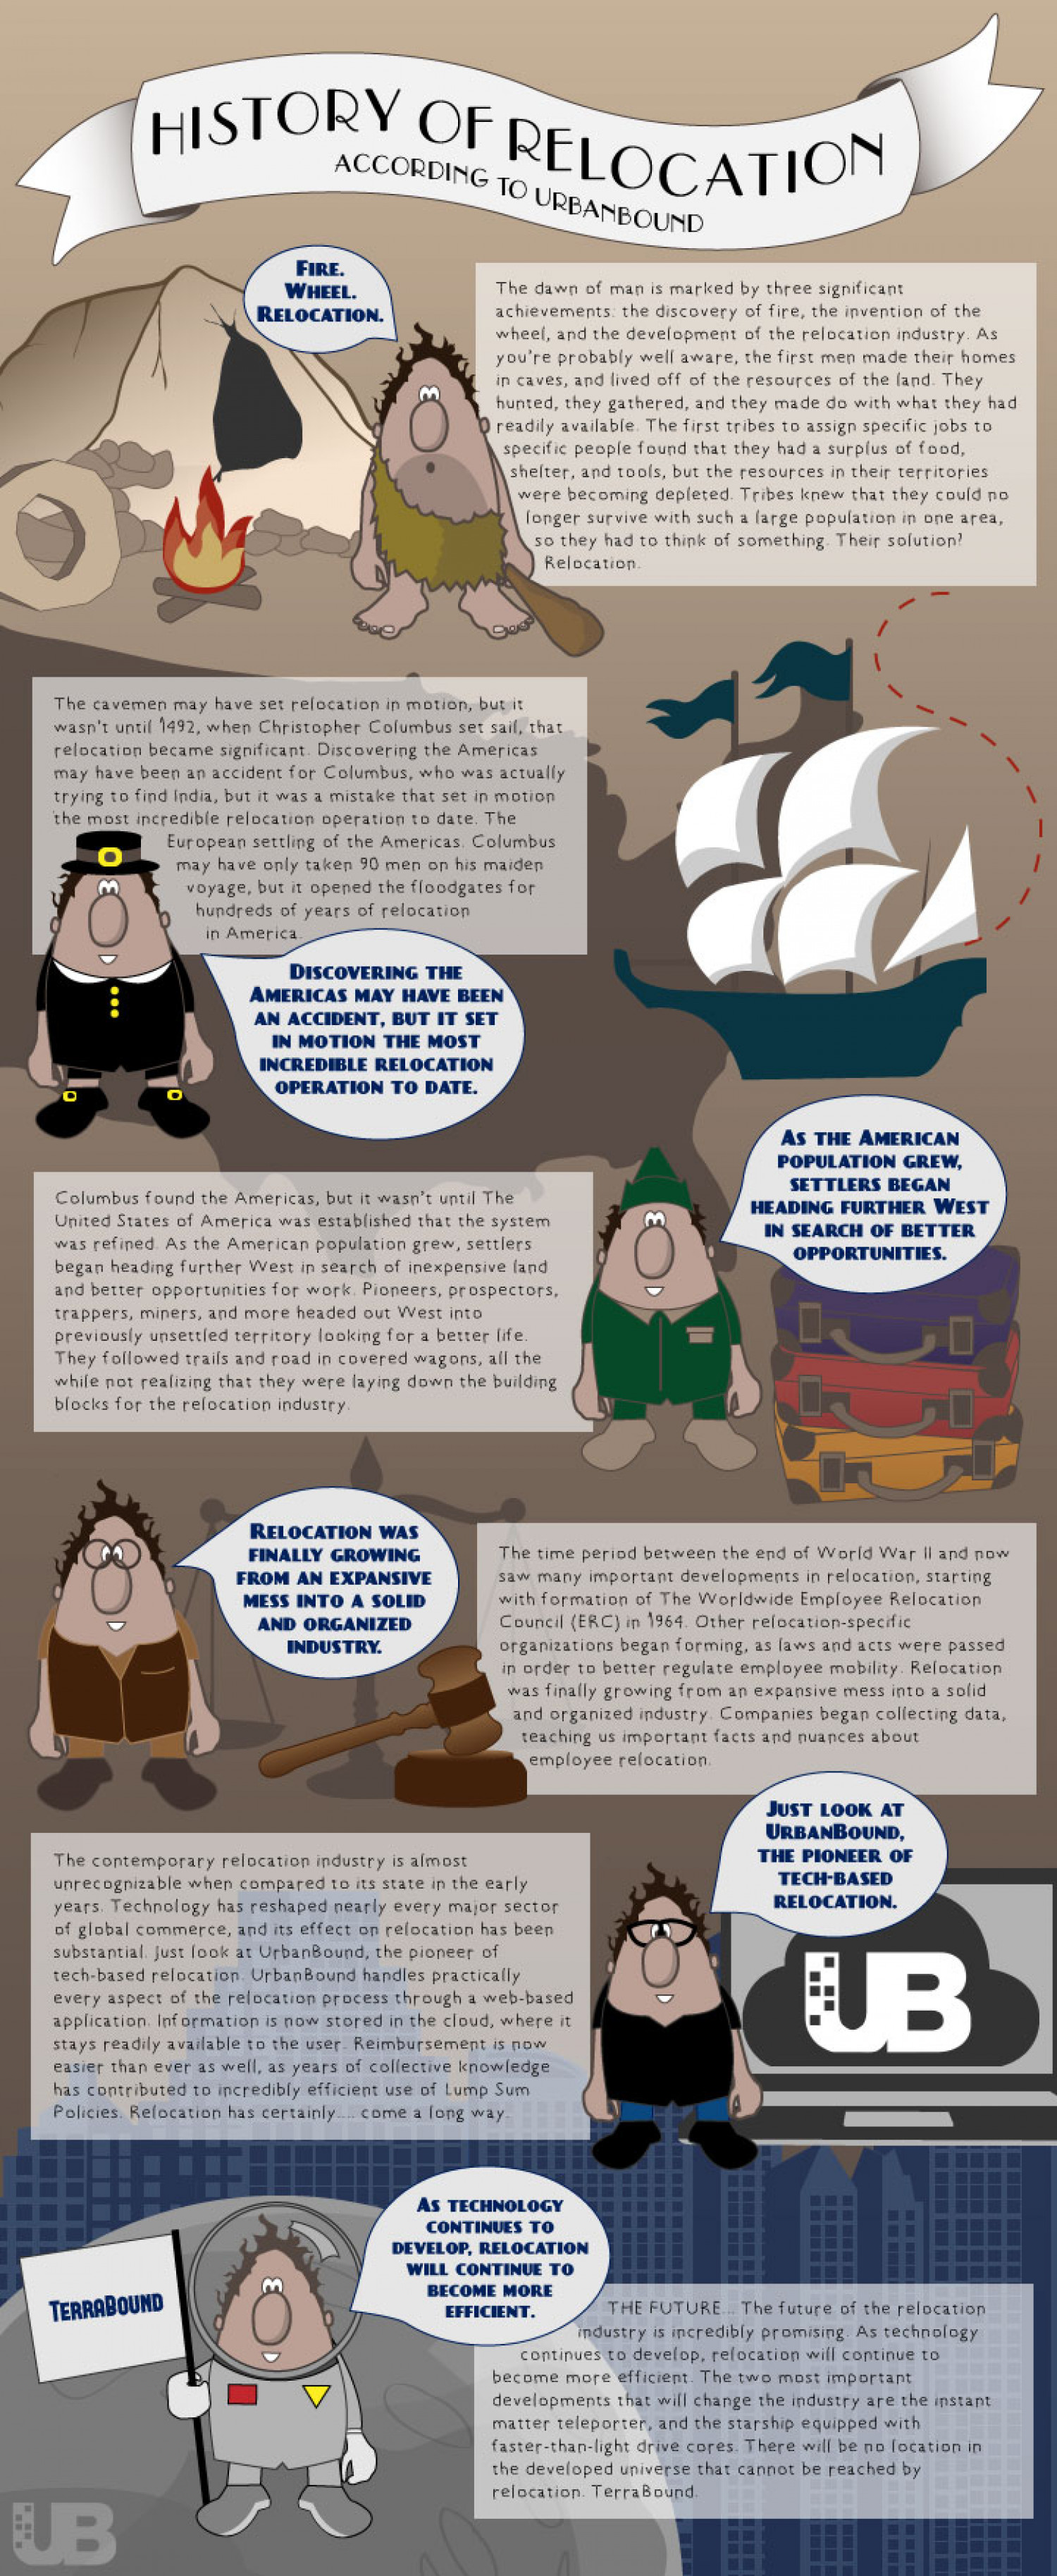 History of Relocation Infographic